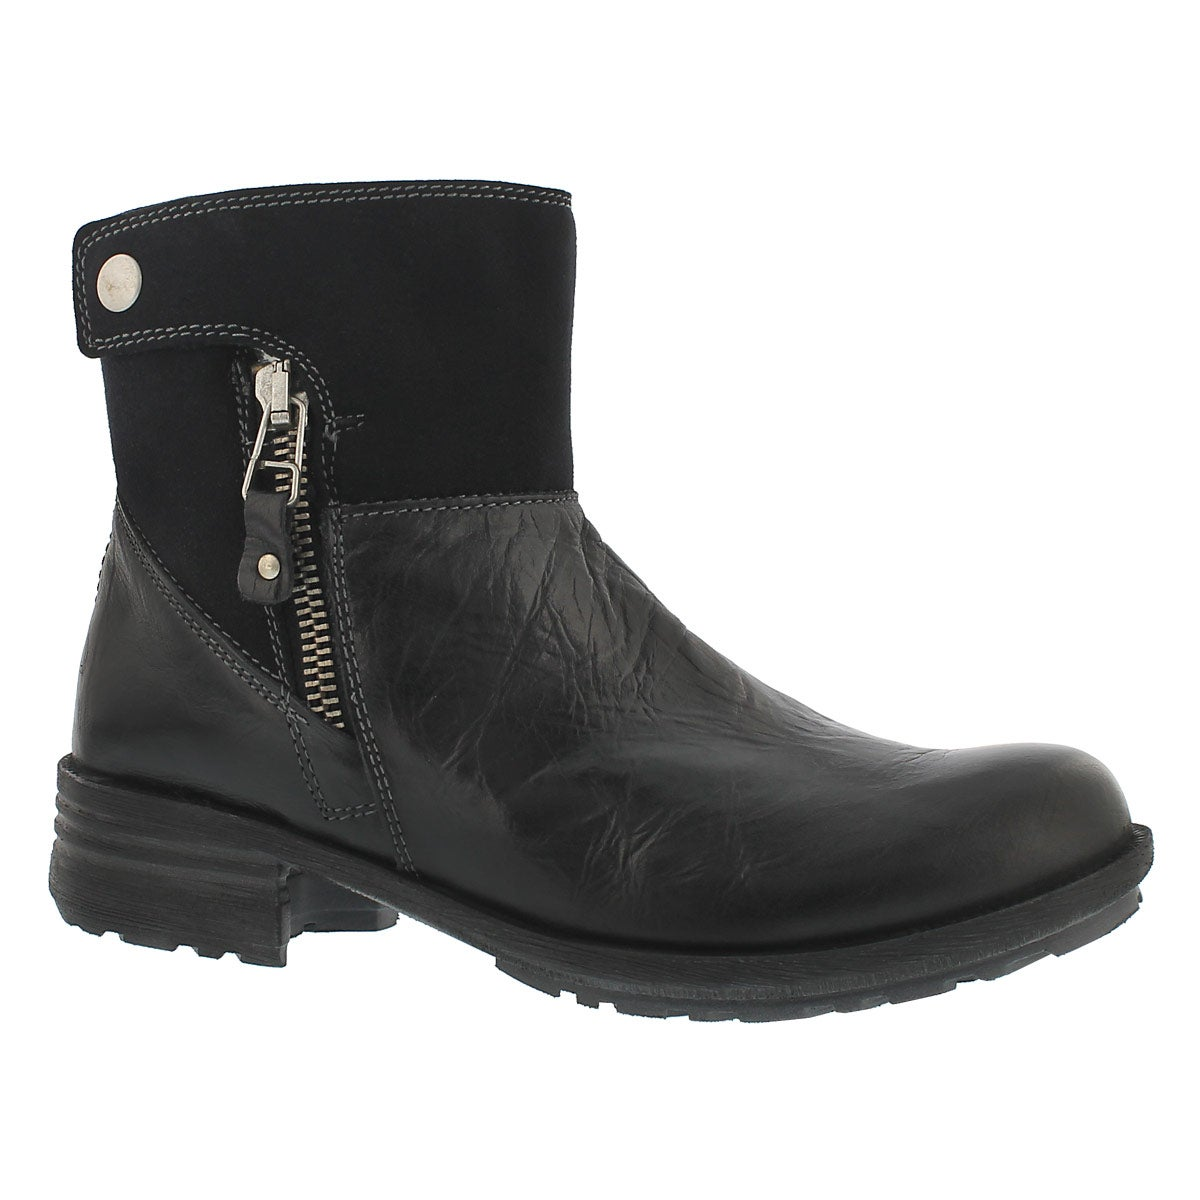 Women's SANDRA 24 blk leather zip up ankle boots